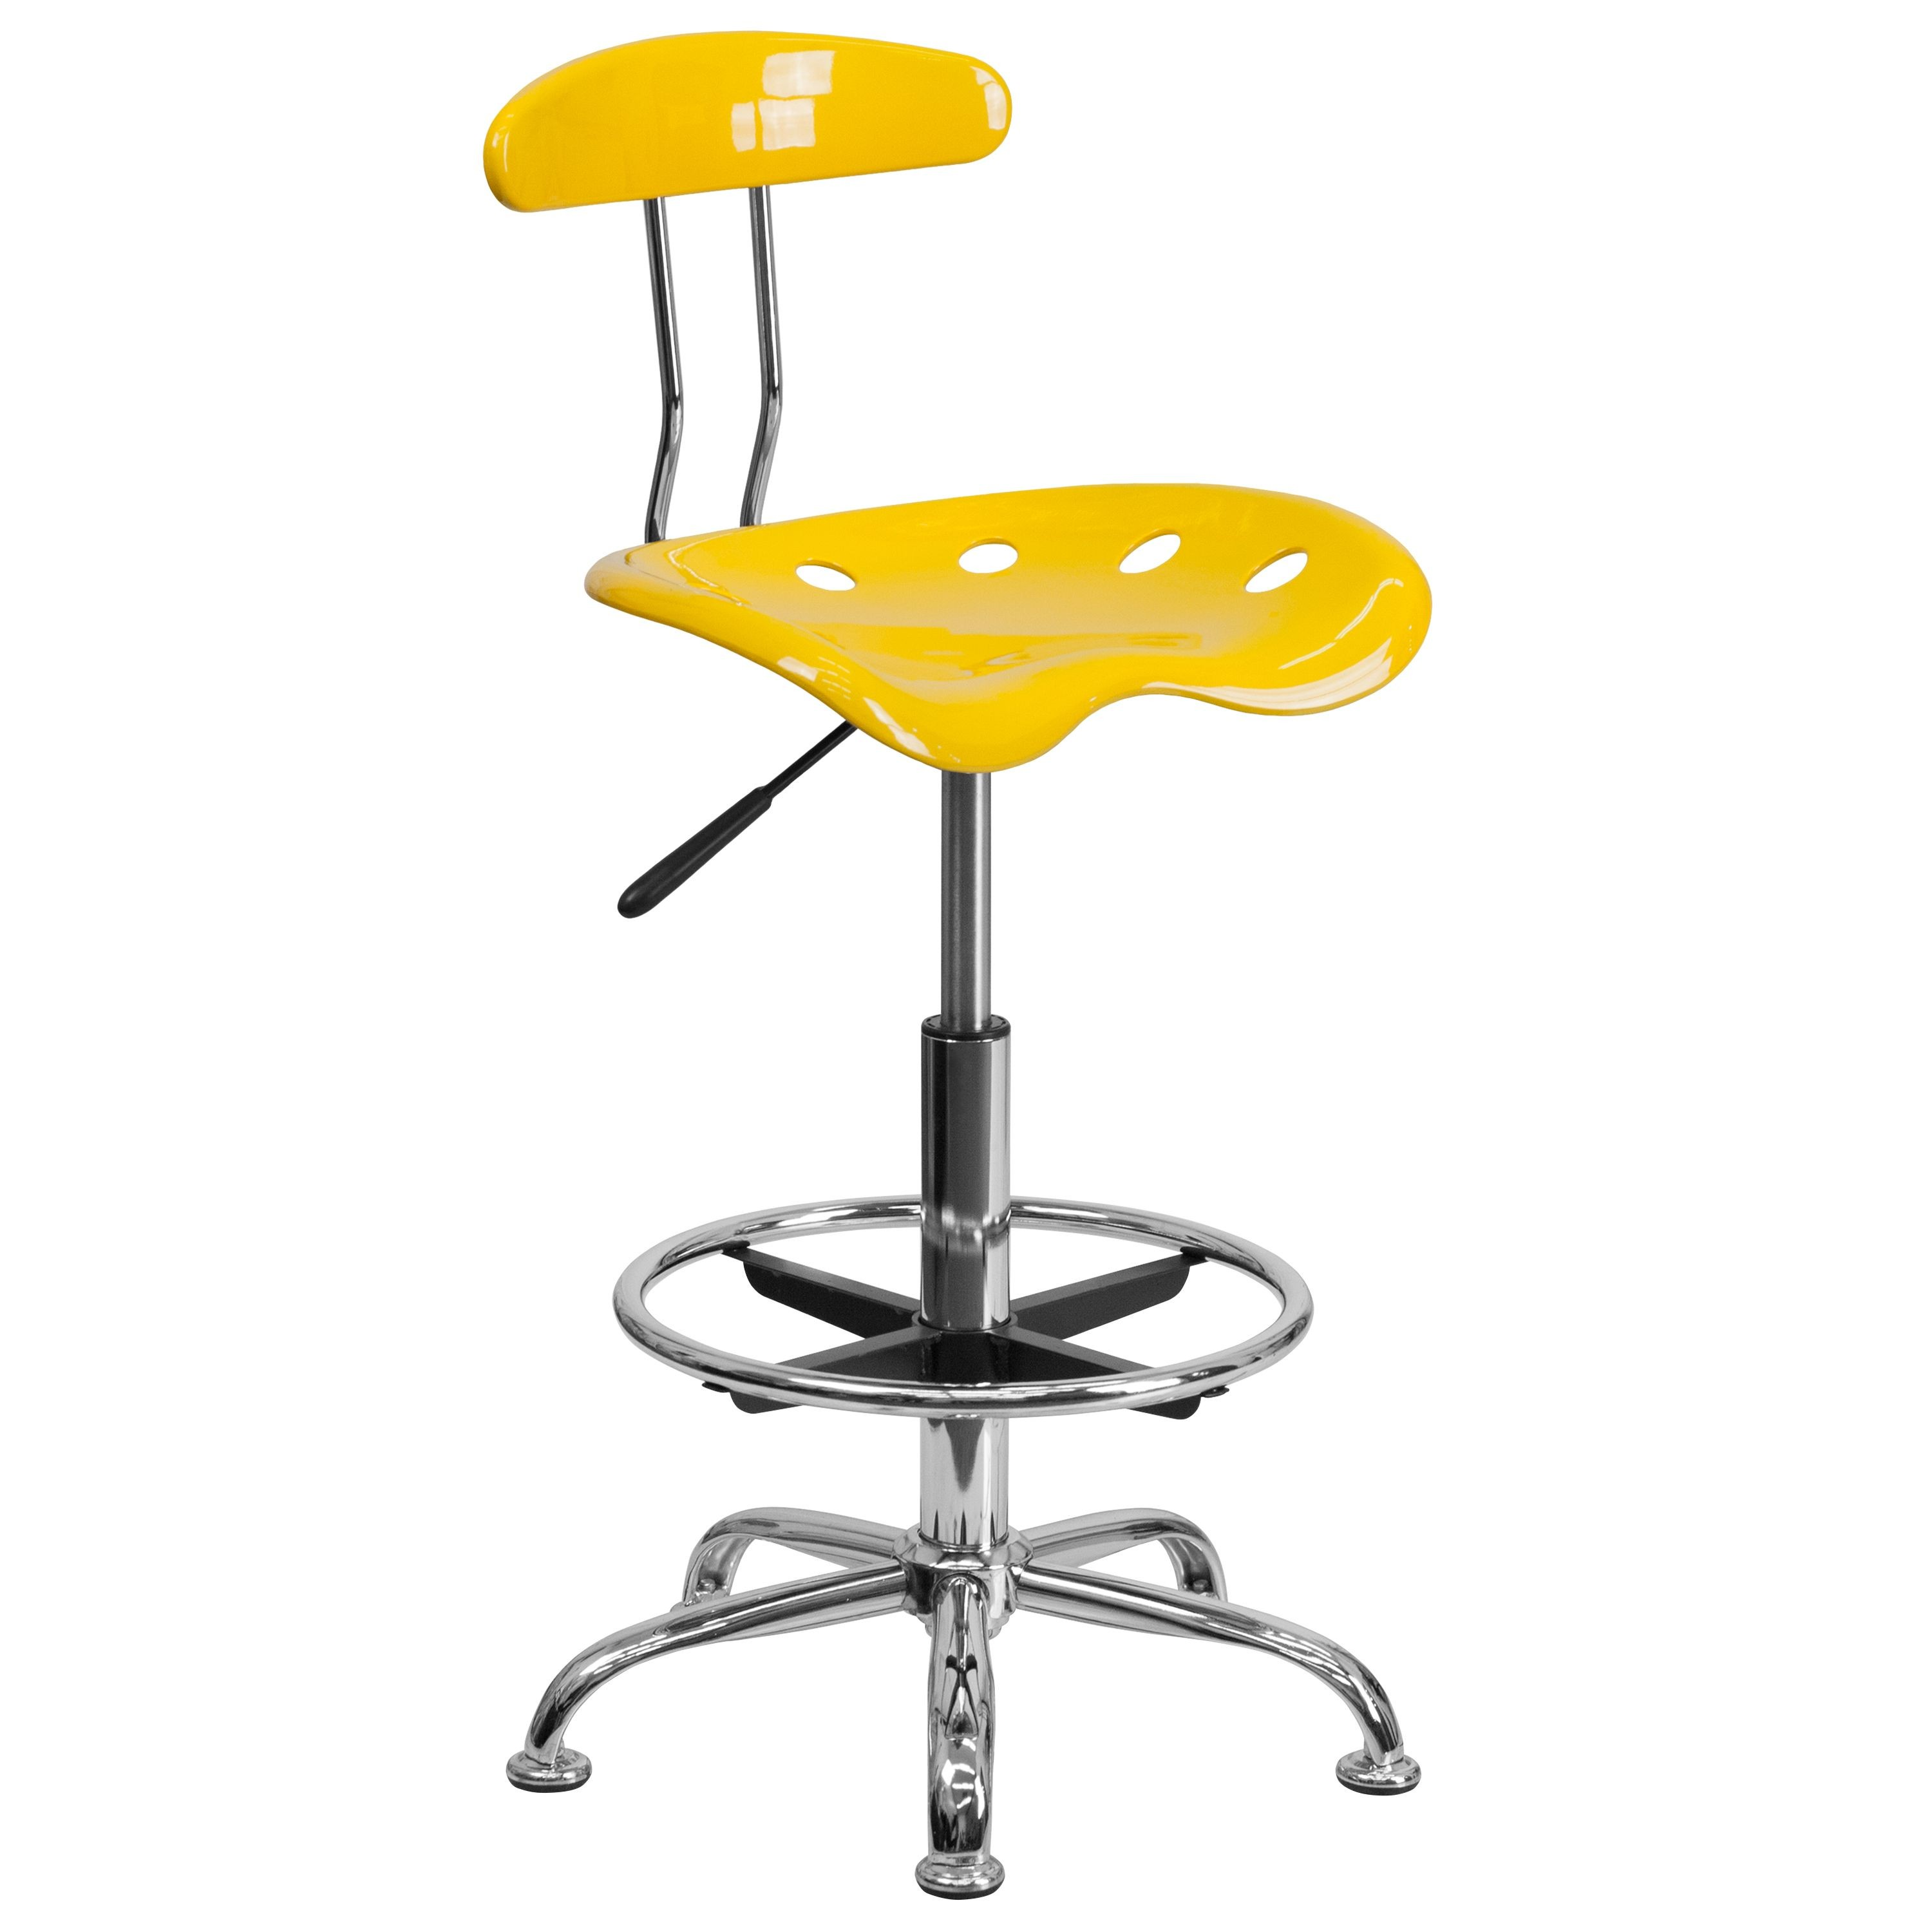 Flash Furniture LF-215-YELLOW-GG Vibrant Orange-Yellow and Chrome Drafting Stool-Bar Stool with Tractor Seat